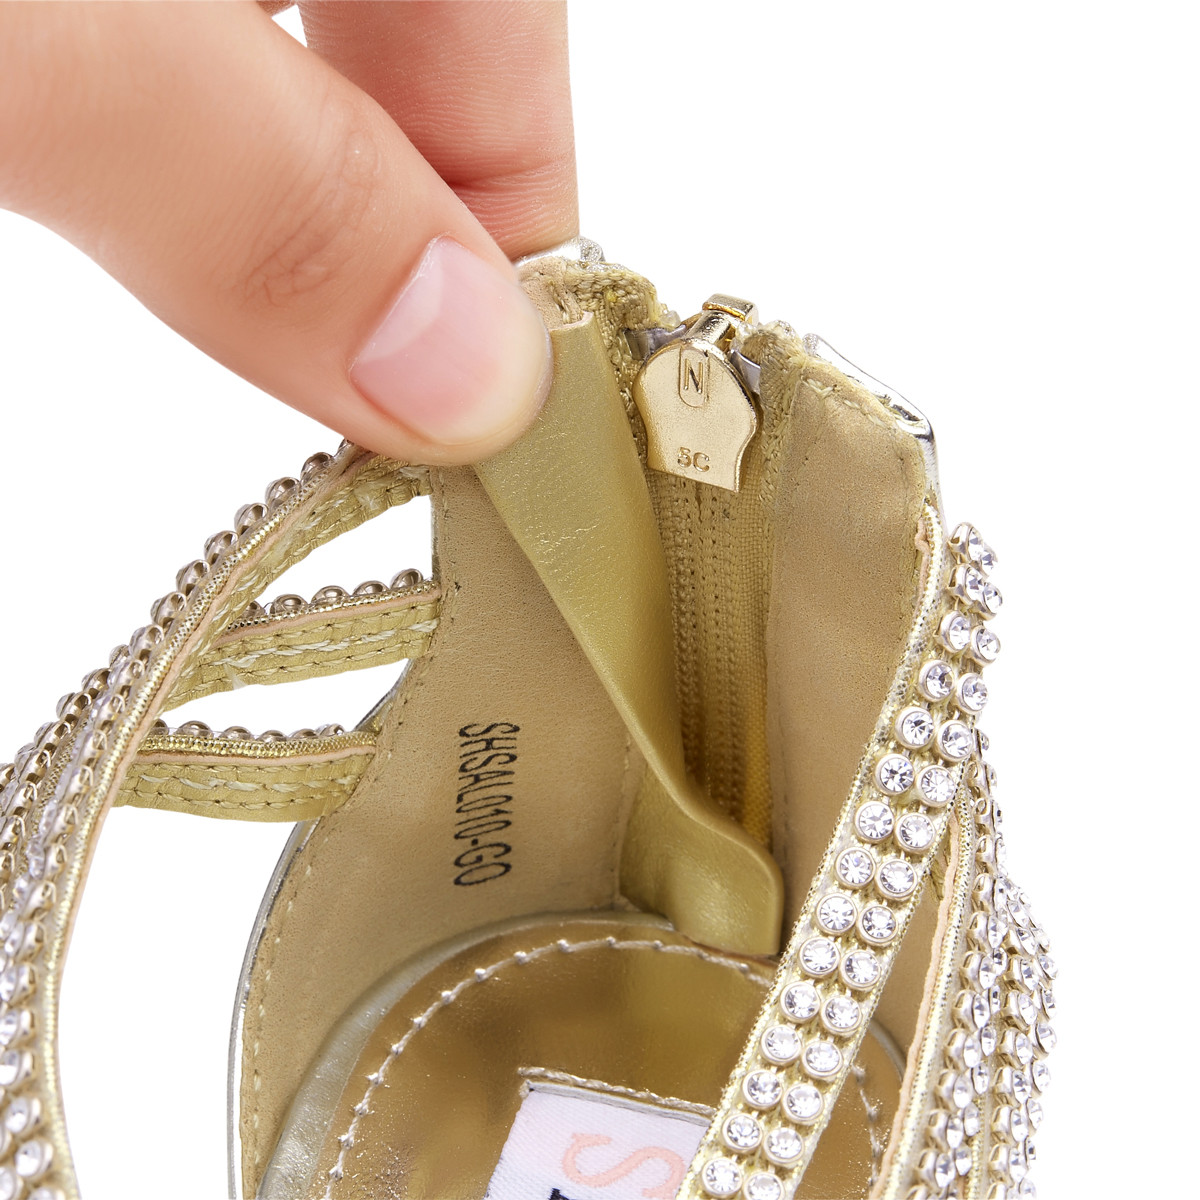 Womens-Ladies-Low-Kitten-Heel-Wedding-Glitter-Sandals-Strappy-Silver-Shoes thumbnail 23